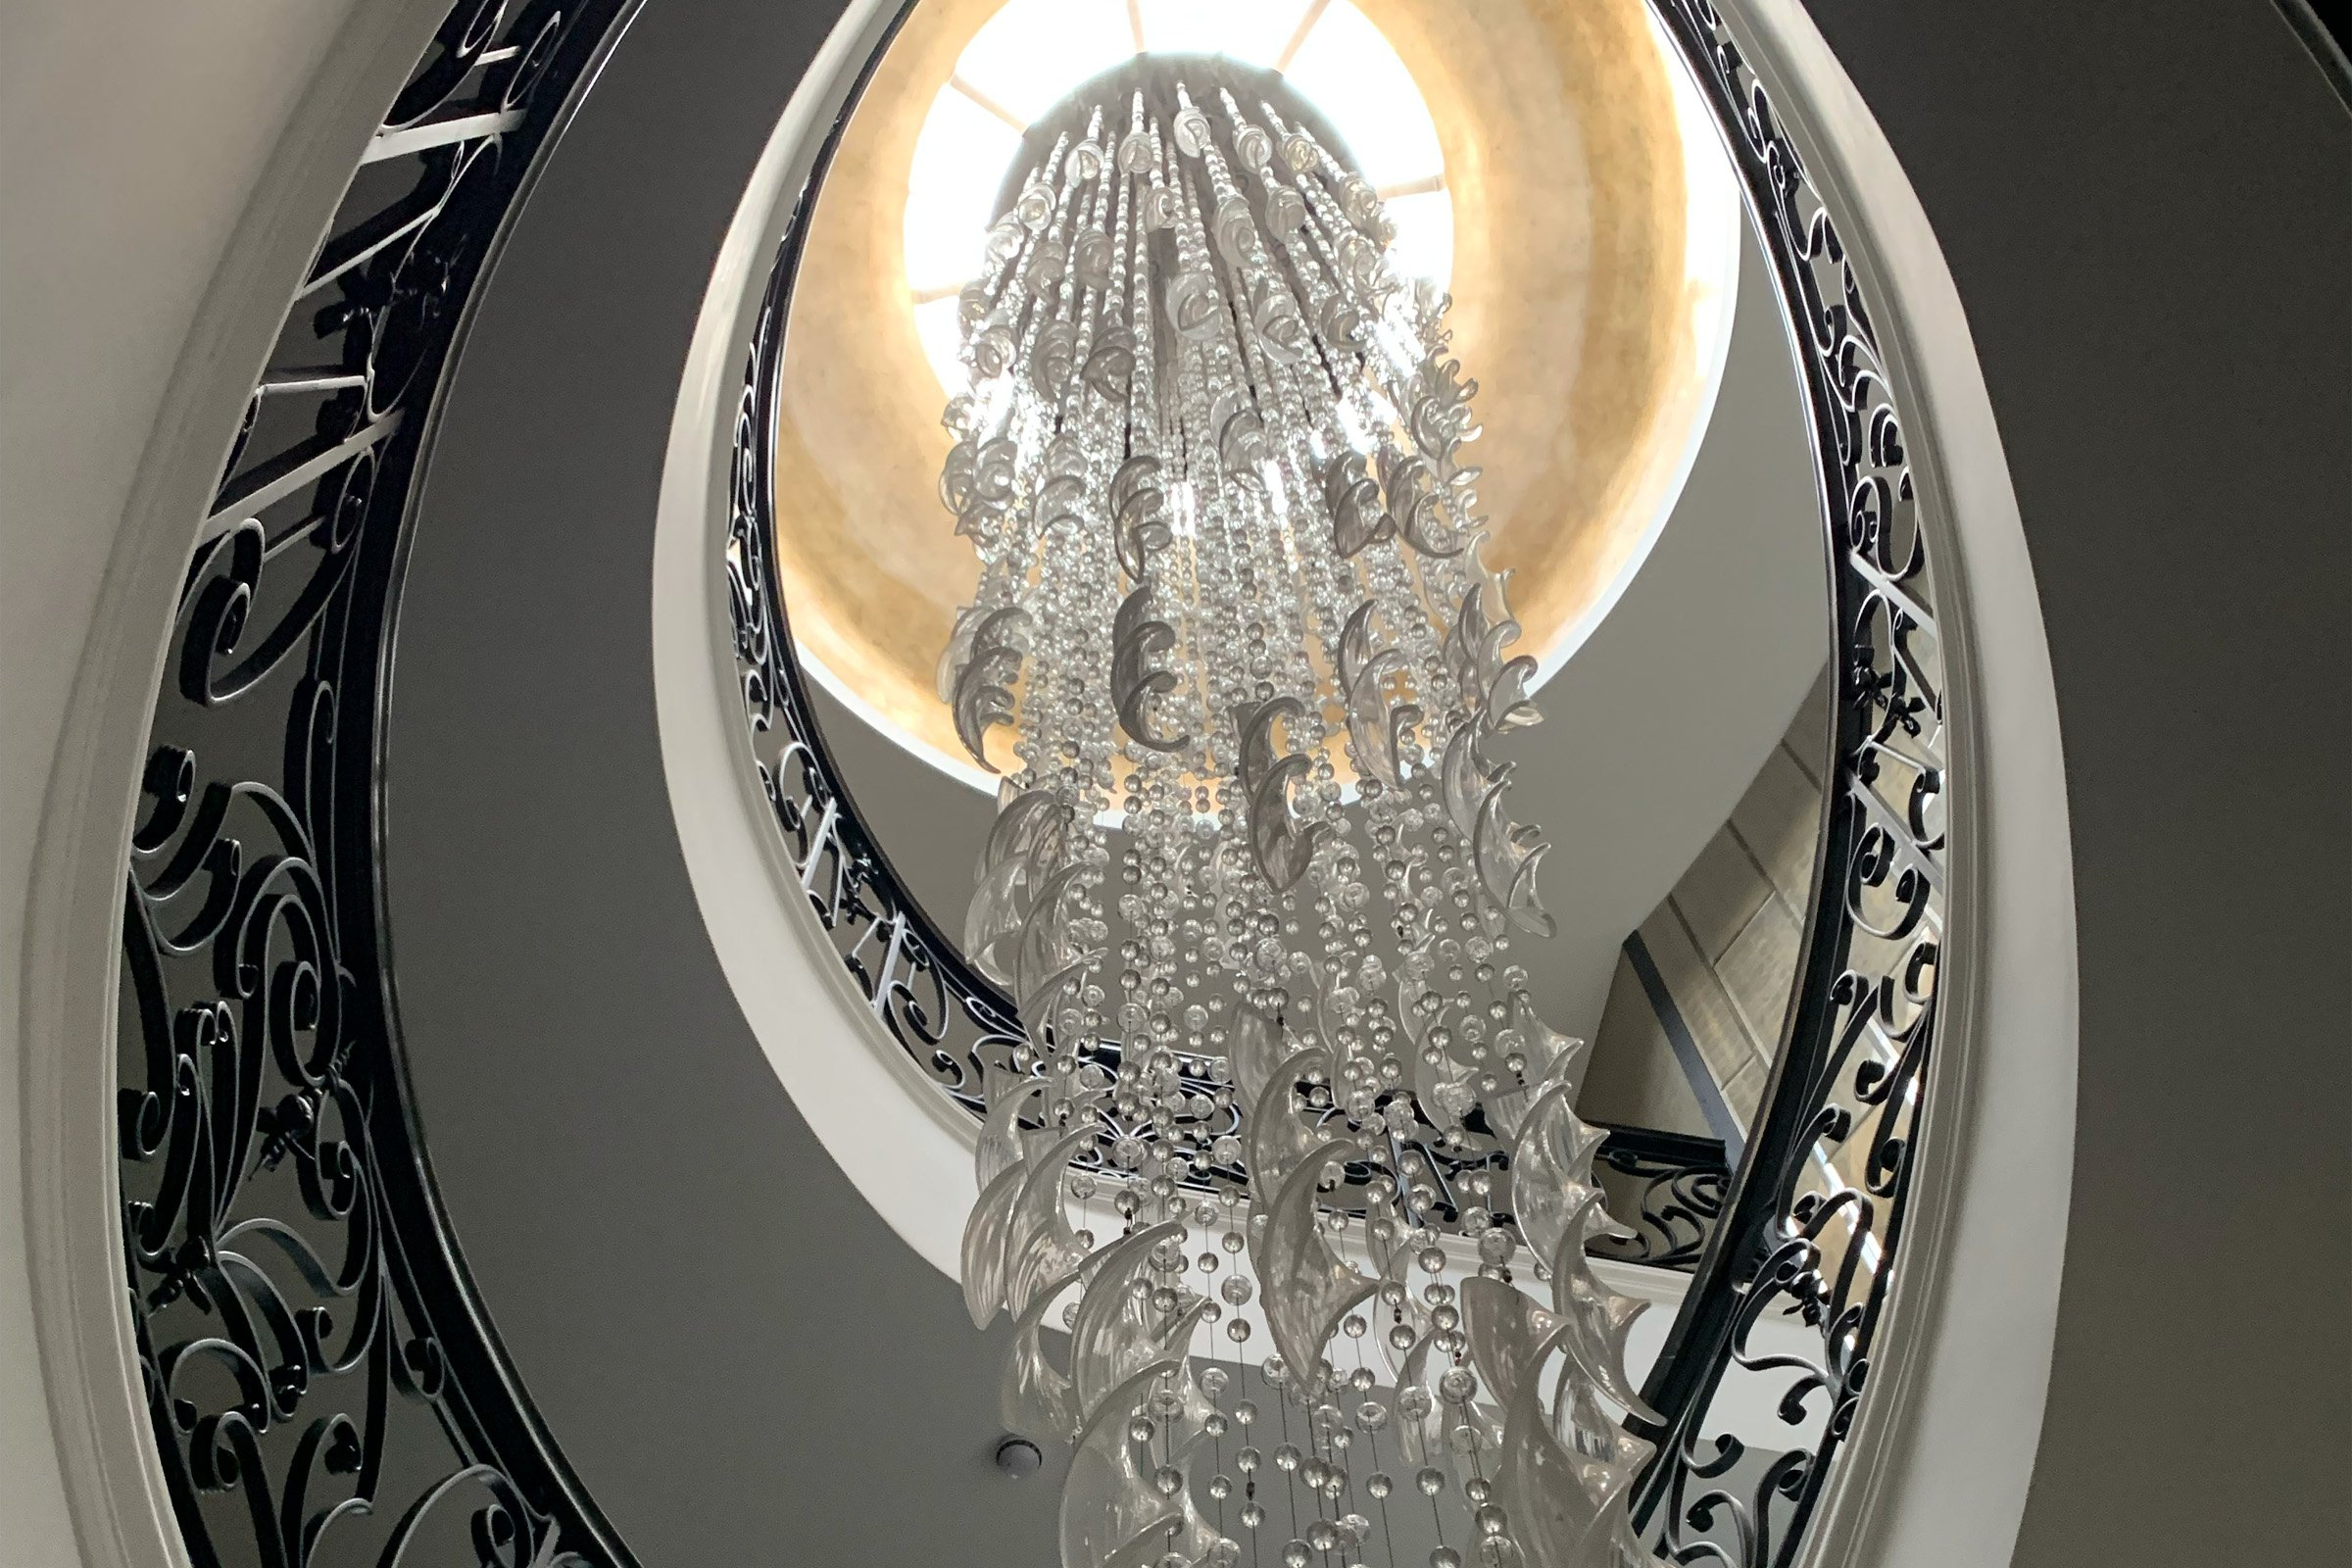 Statement chandelier with Lutron lighting control